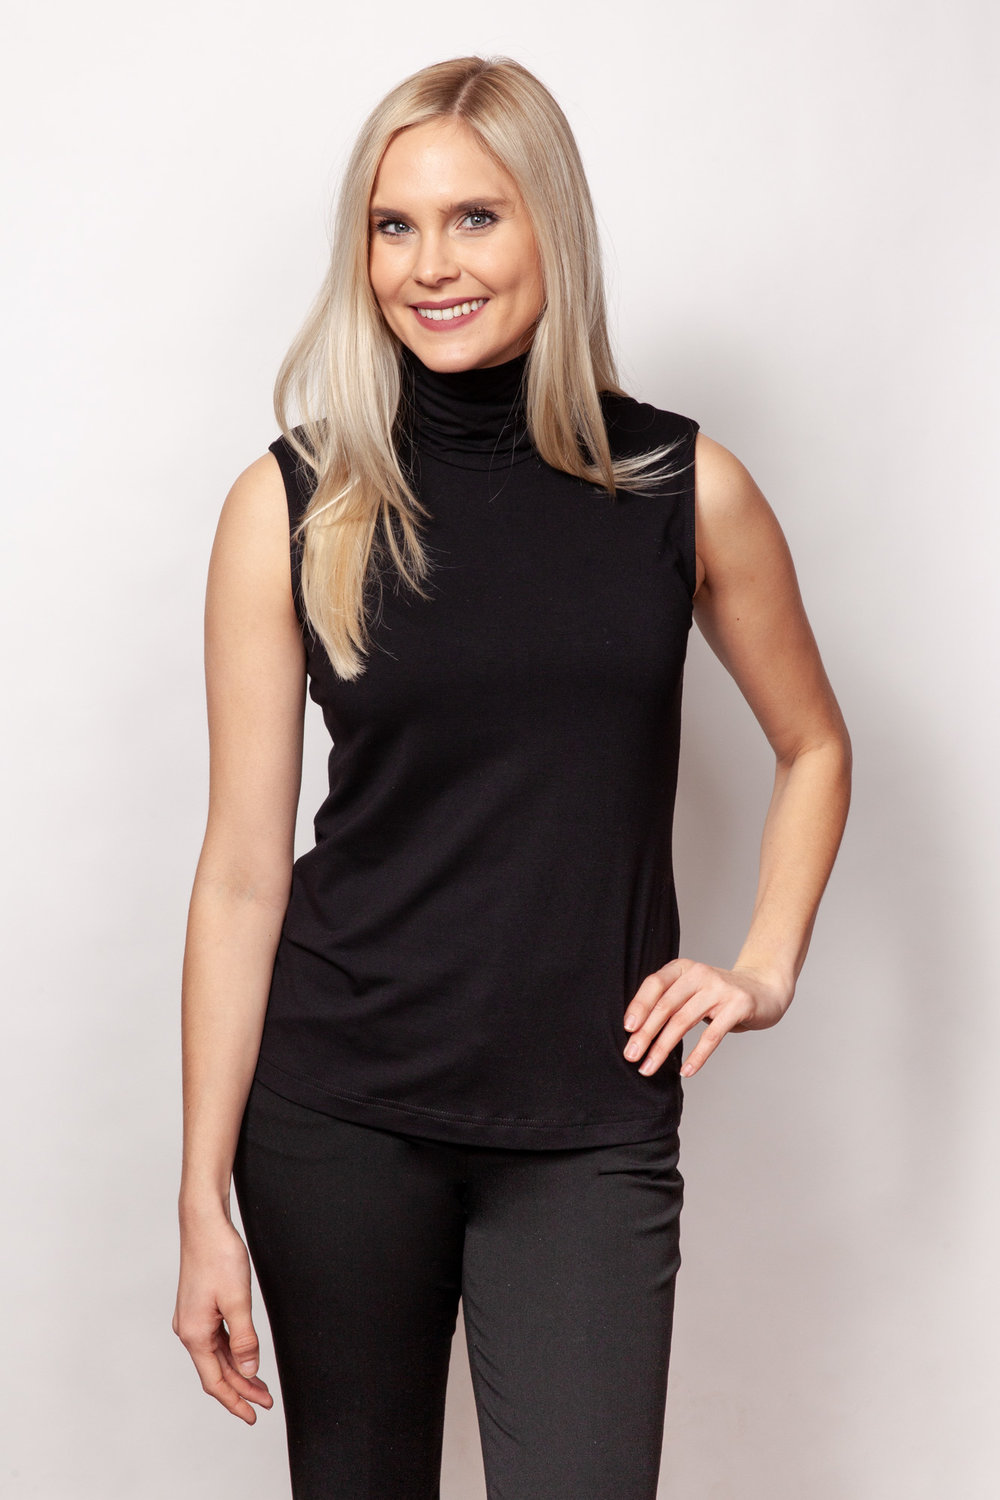 Copy of Style # 33377-19, p 10 <br/>Cashmerette Jersey <br/>Colors: Black + 3 others